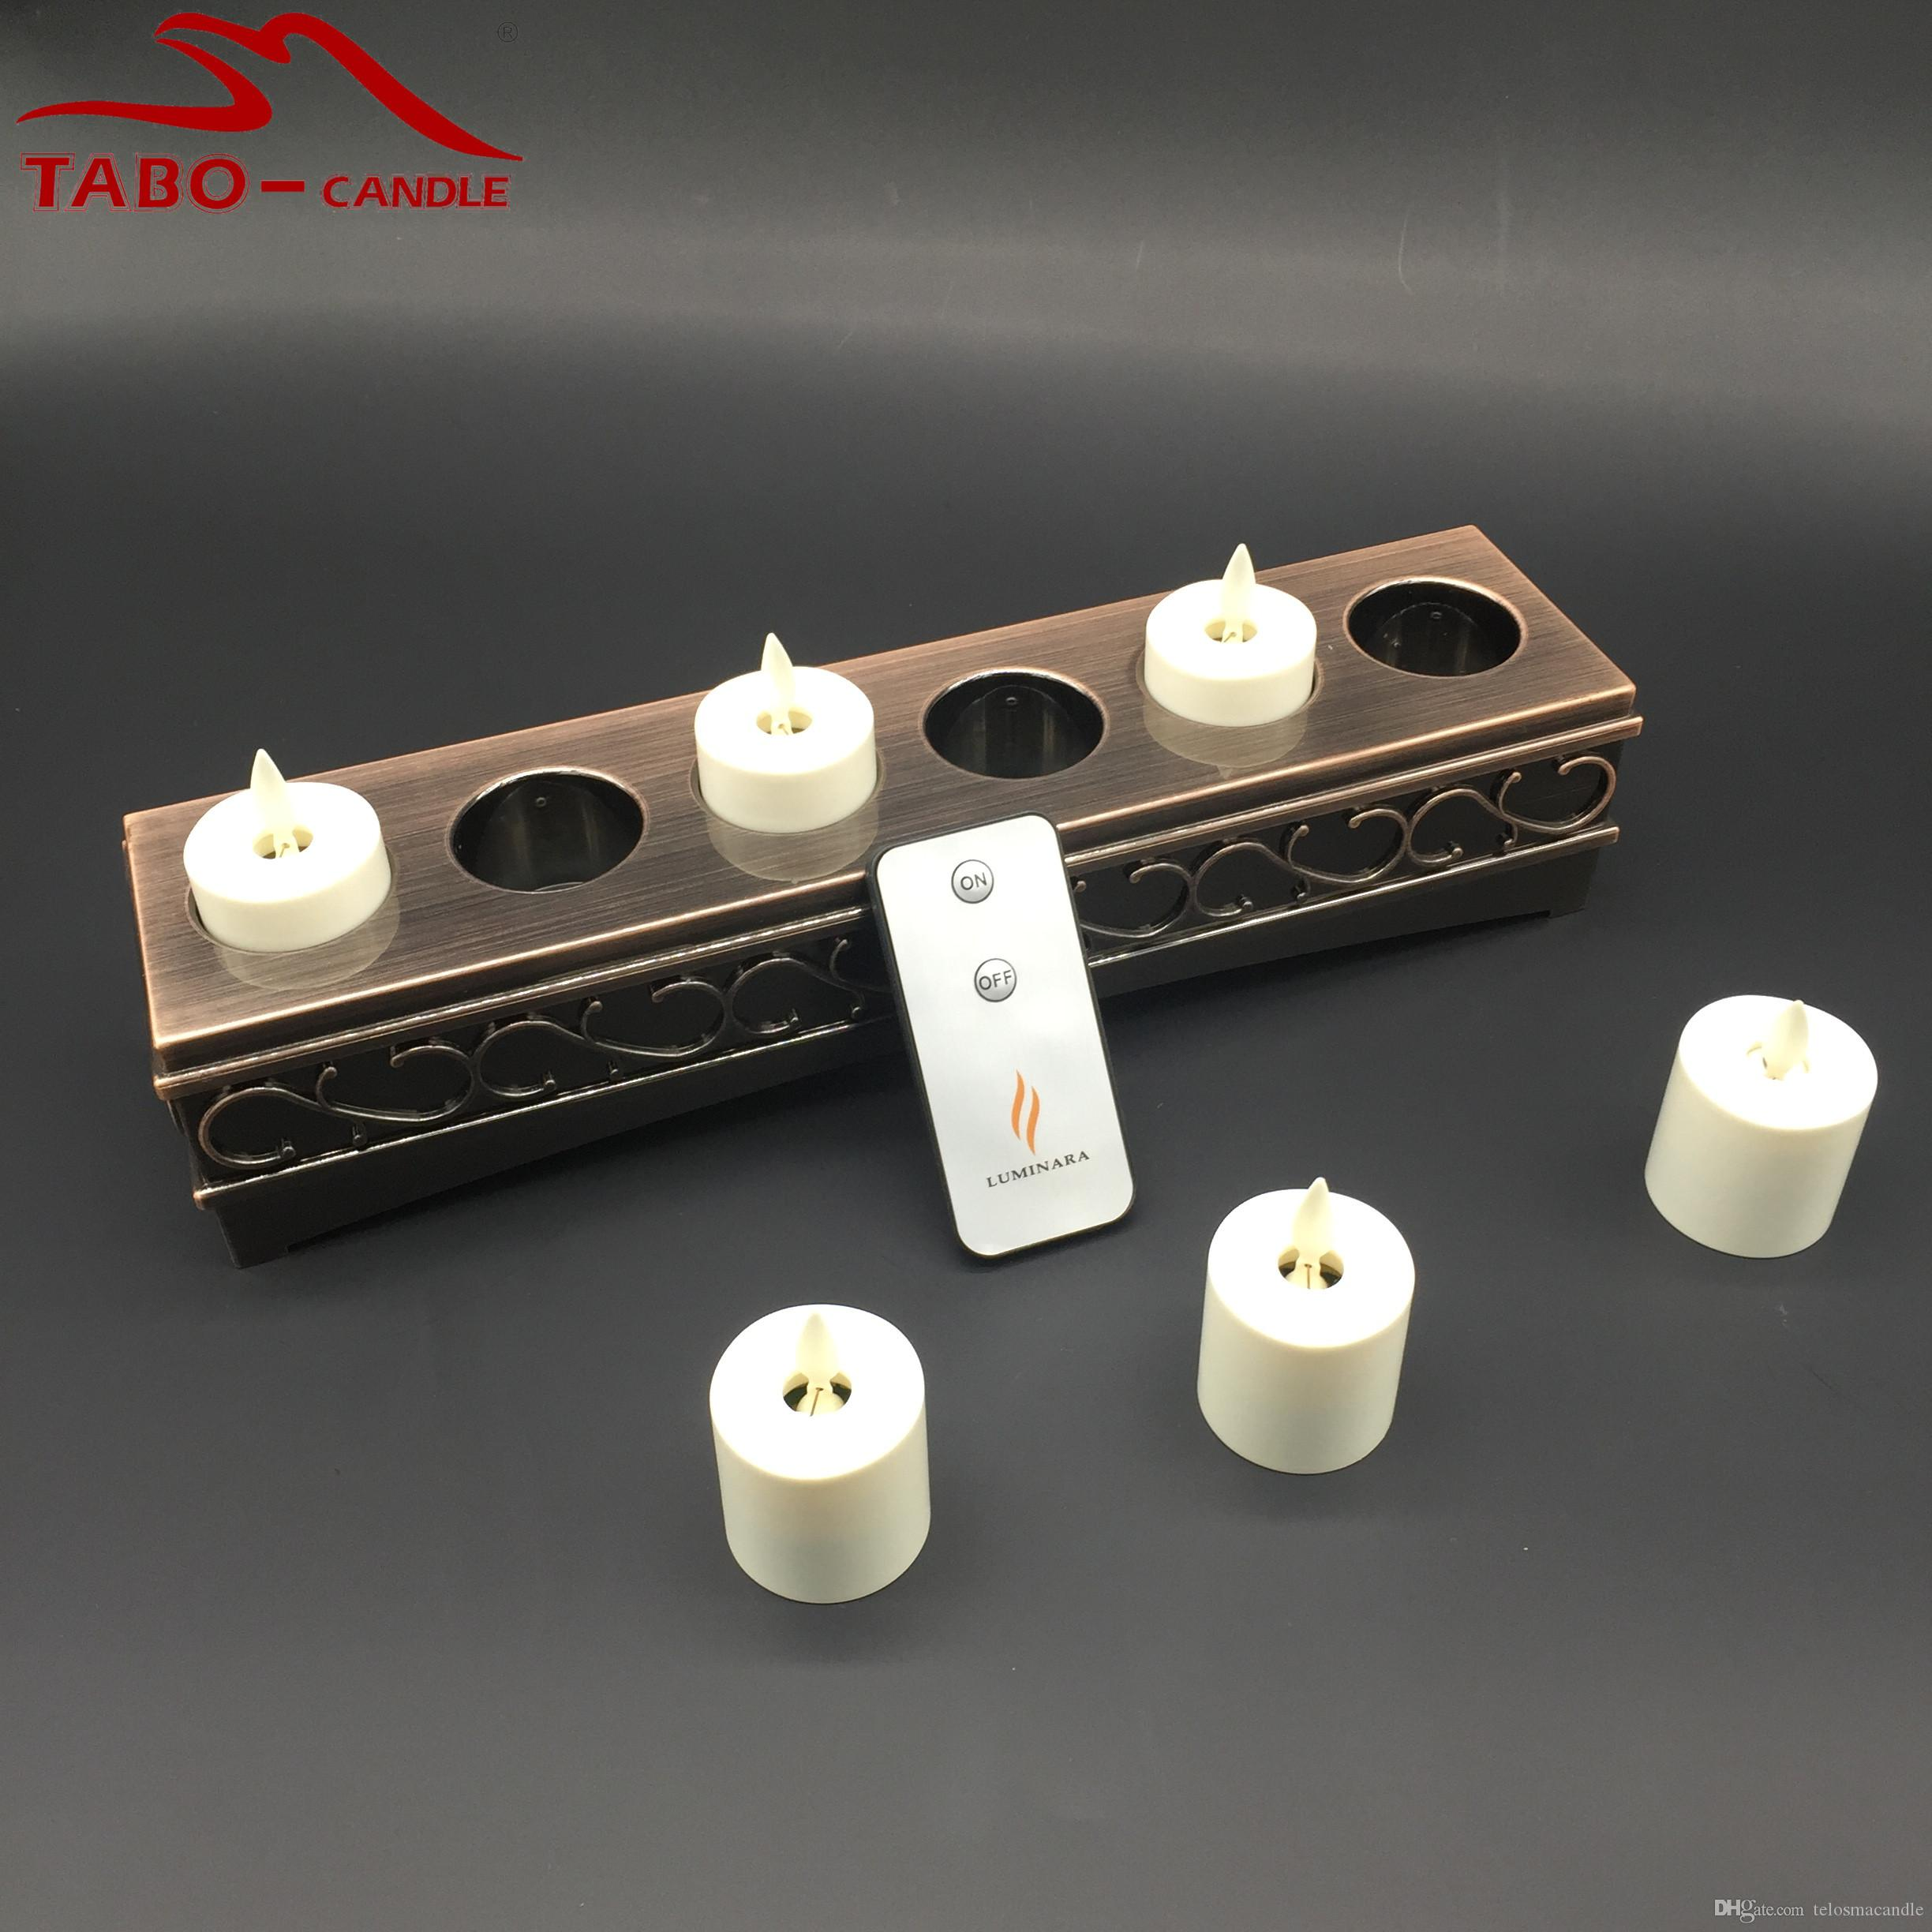 Remoted Ready Classic Pillar Real Flame Effect Flameless Luminara Circuits Flickering Candle Rechargeable Led Tealight For Home And Wedding Decoration Dancing